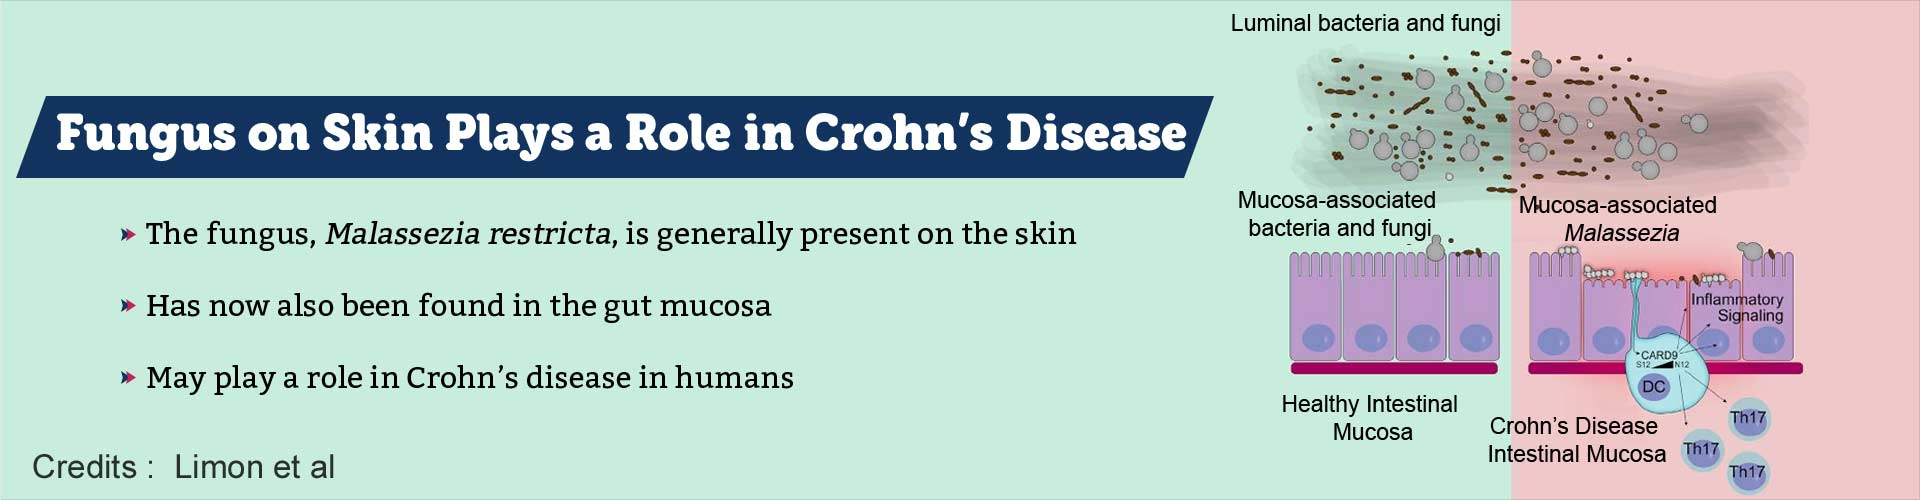 Fungus Usually Present on Skin Could Have a Role in Crohn's Disease